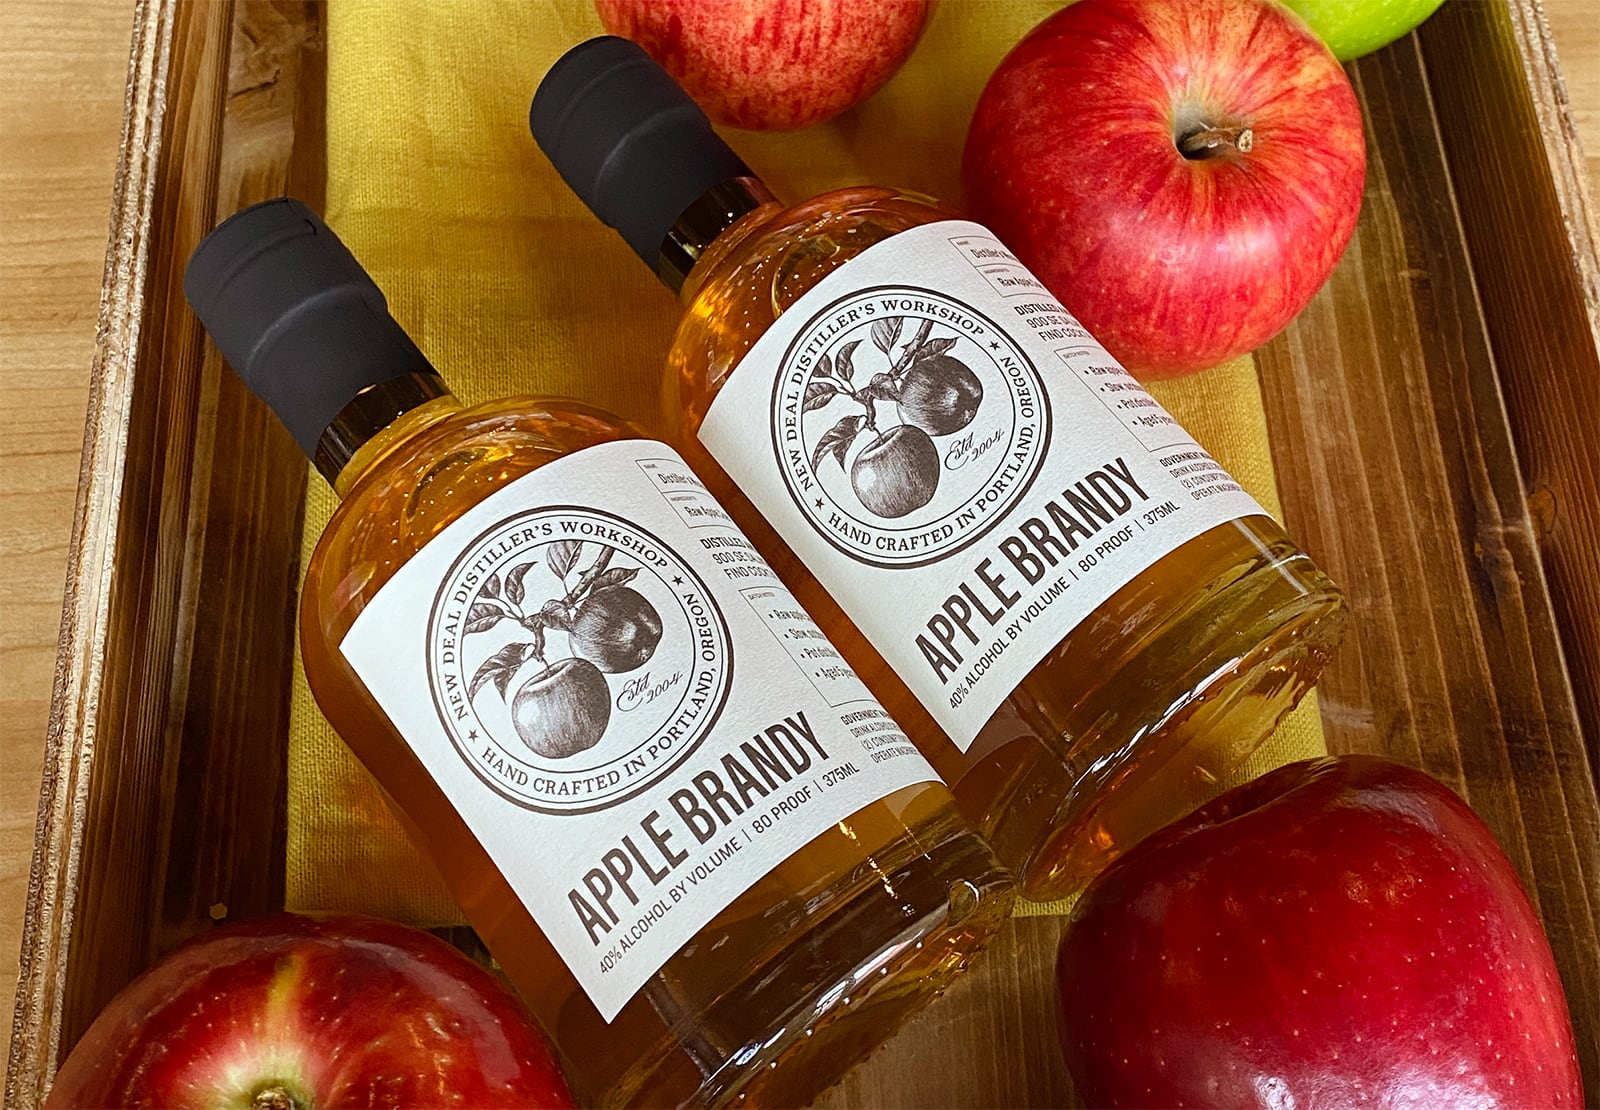 New Deal Distiller's Workshop Apple Brandy